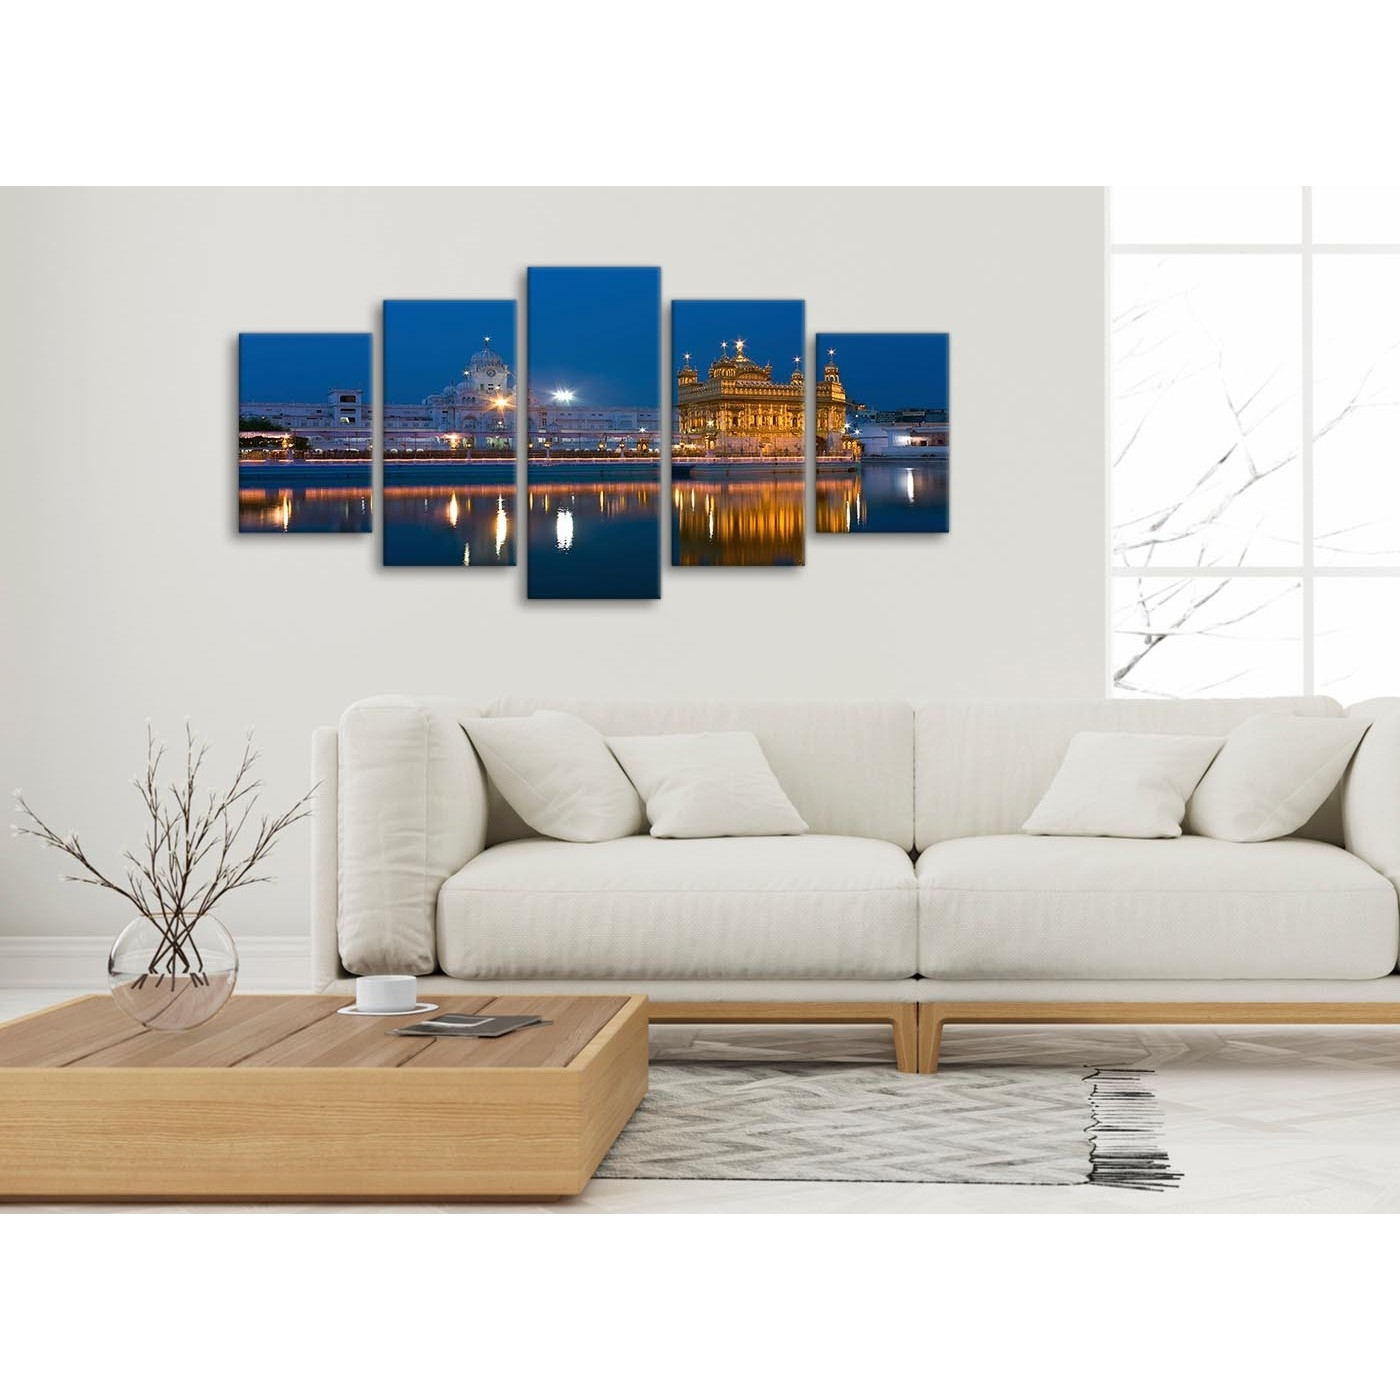 5 Panel Canvas Wall Art Pictures - Sikh Golden Temple Amritsar in 5 Piece Wall Art (Image 4 of 20)